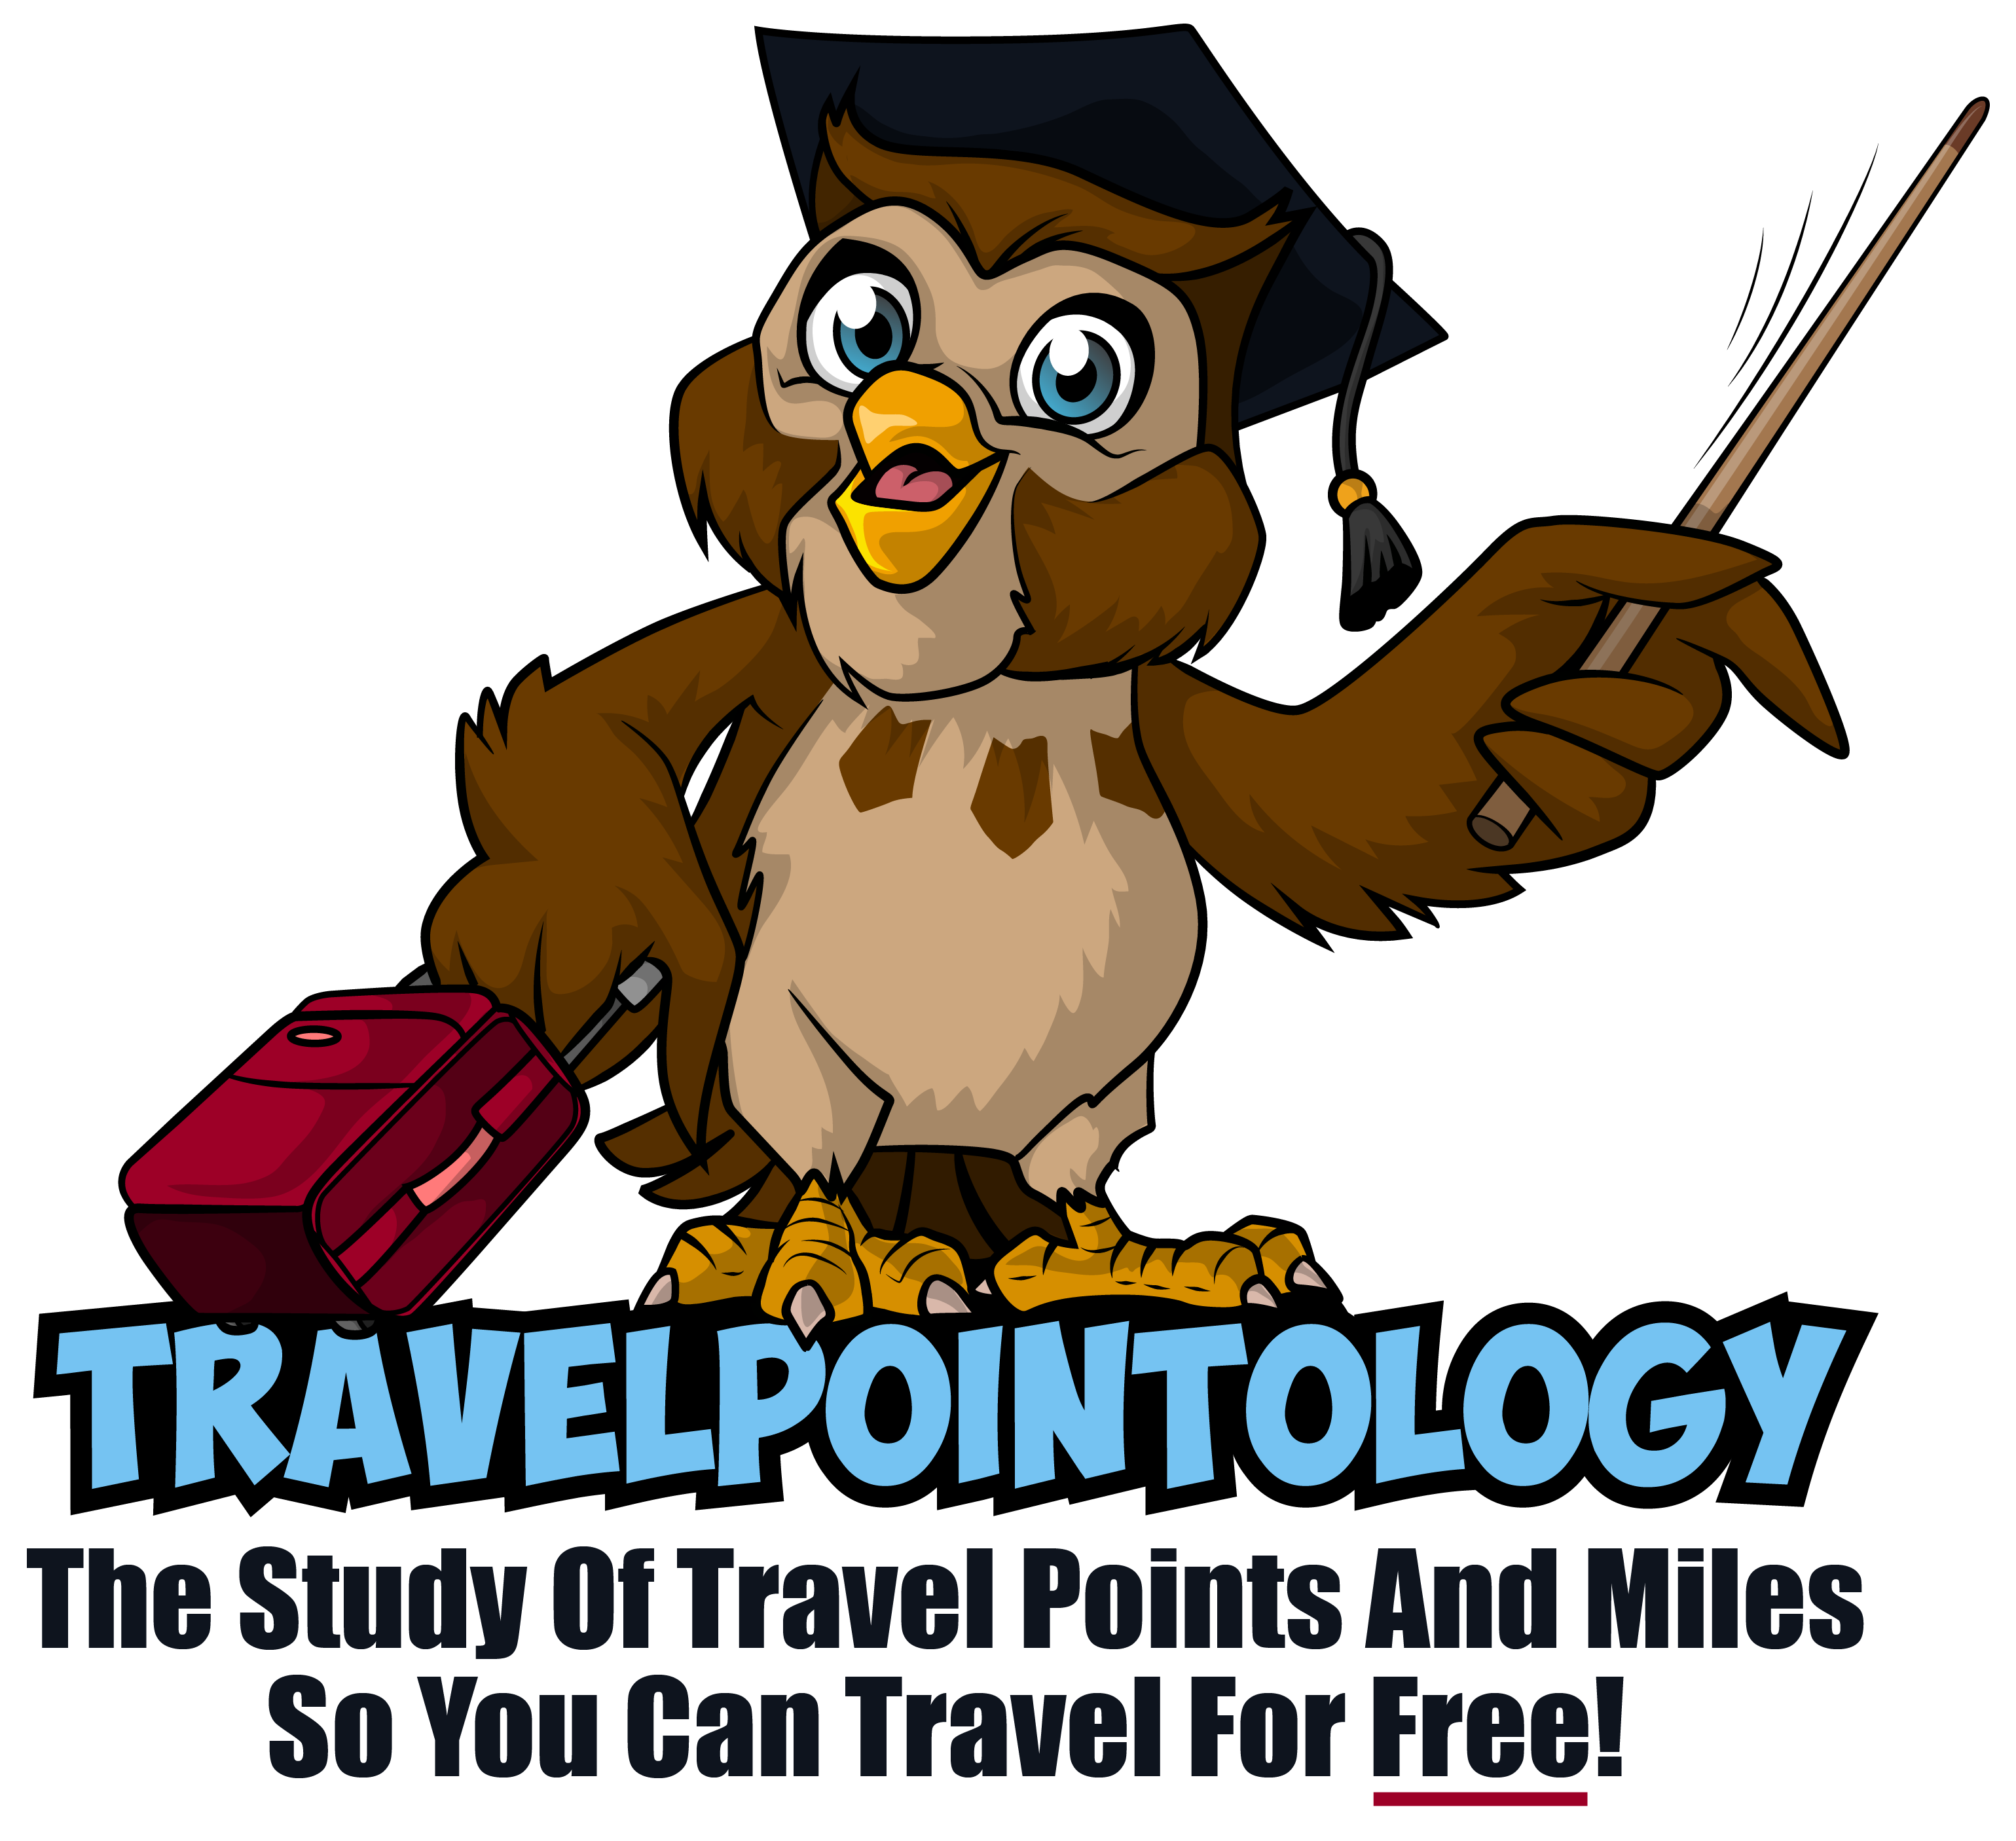 Travelpointology